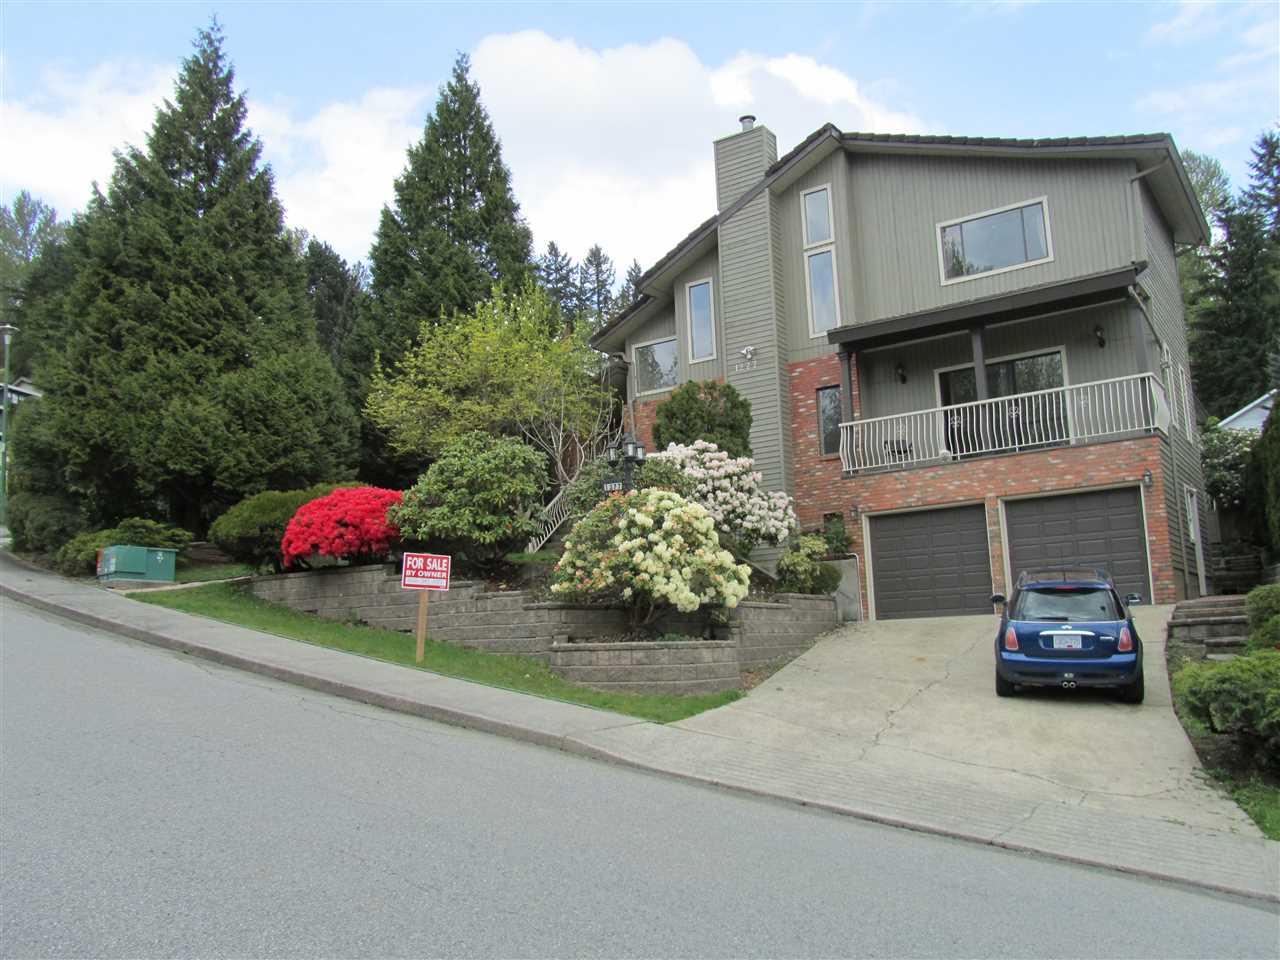 Detached at 1277 CHARTER HILL DRIVE, Coquitlam, British Columbia. Image 1